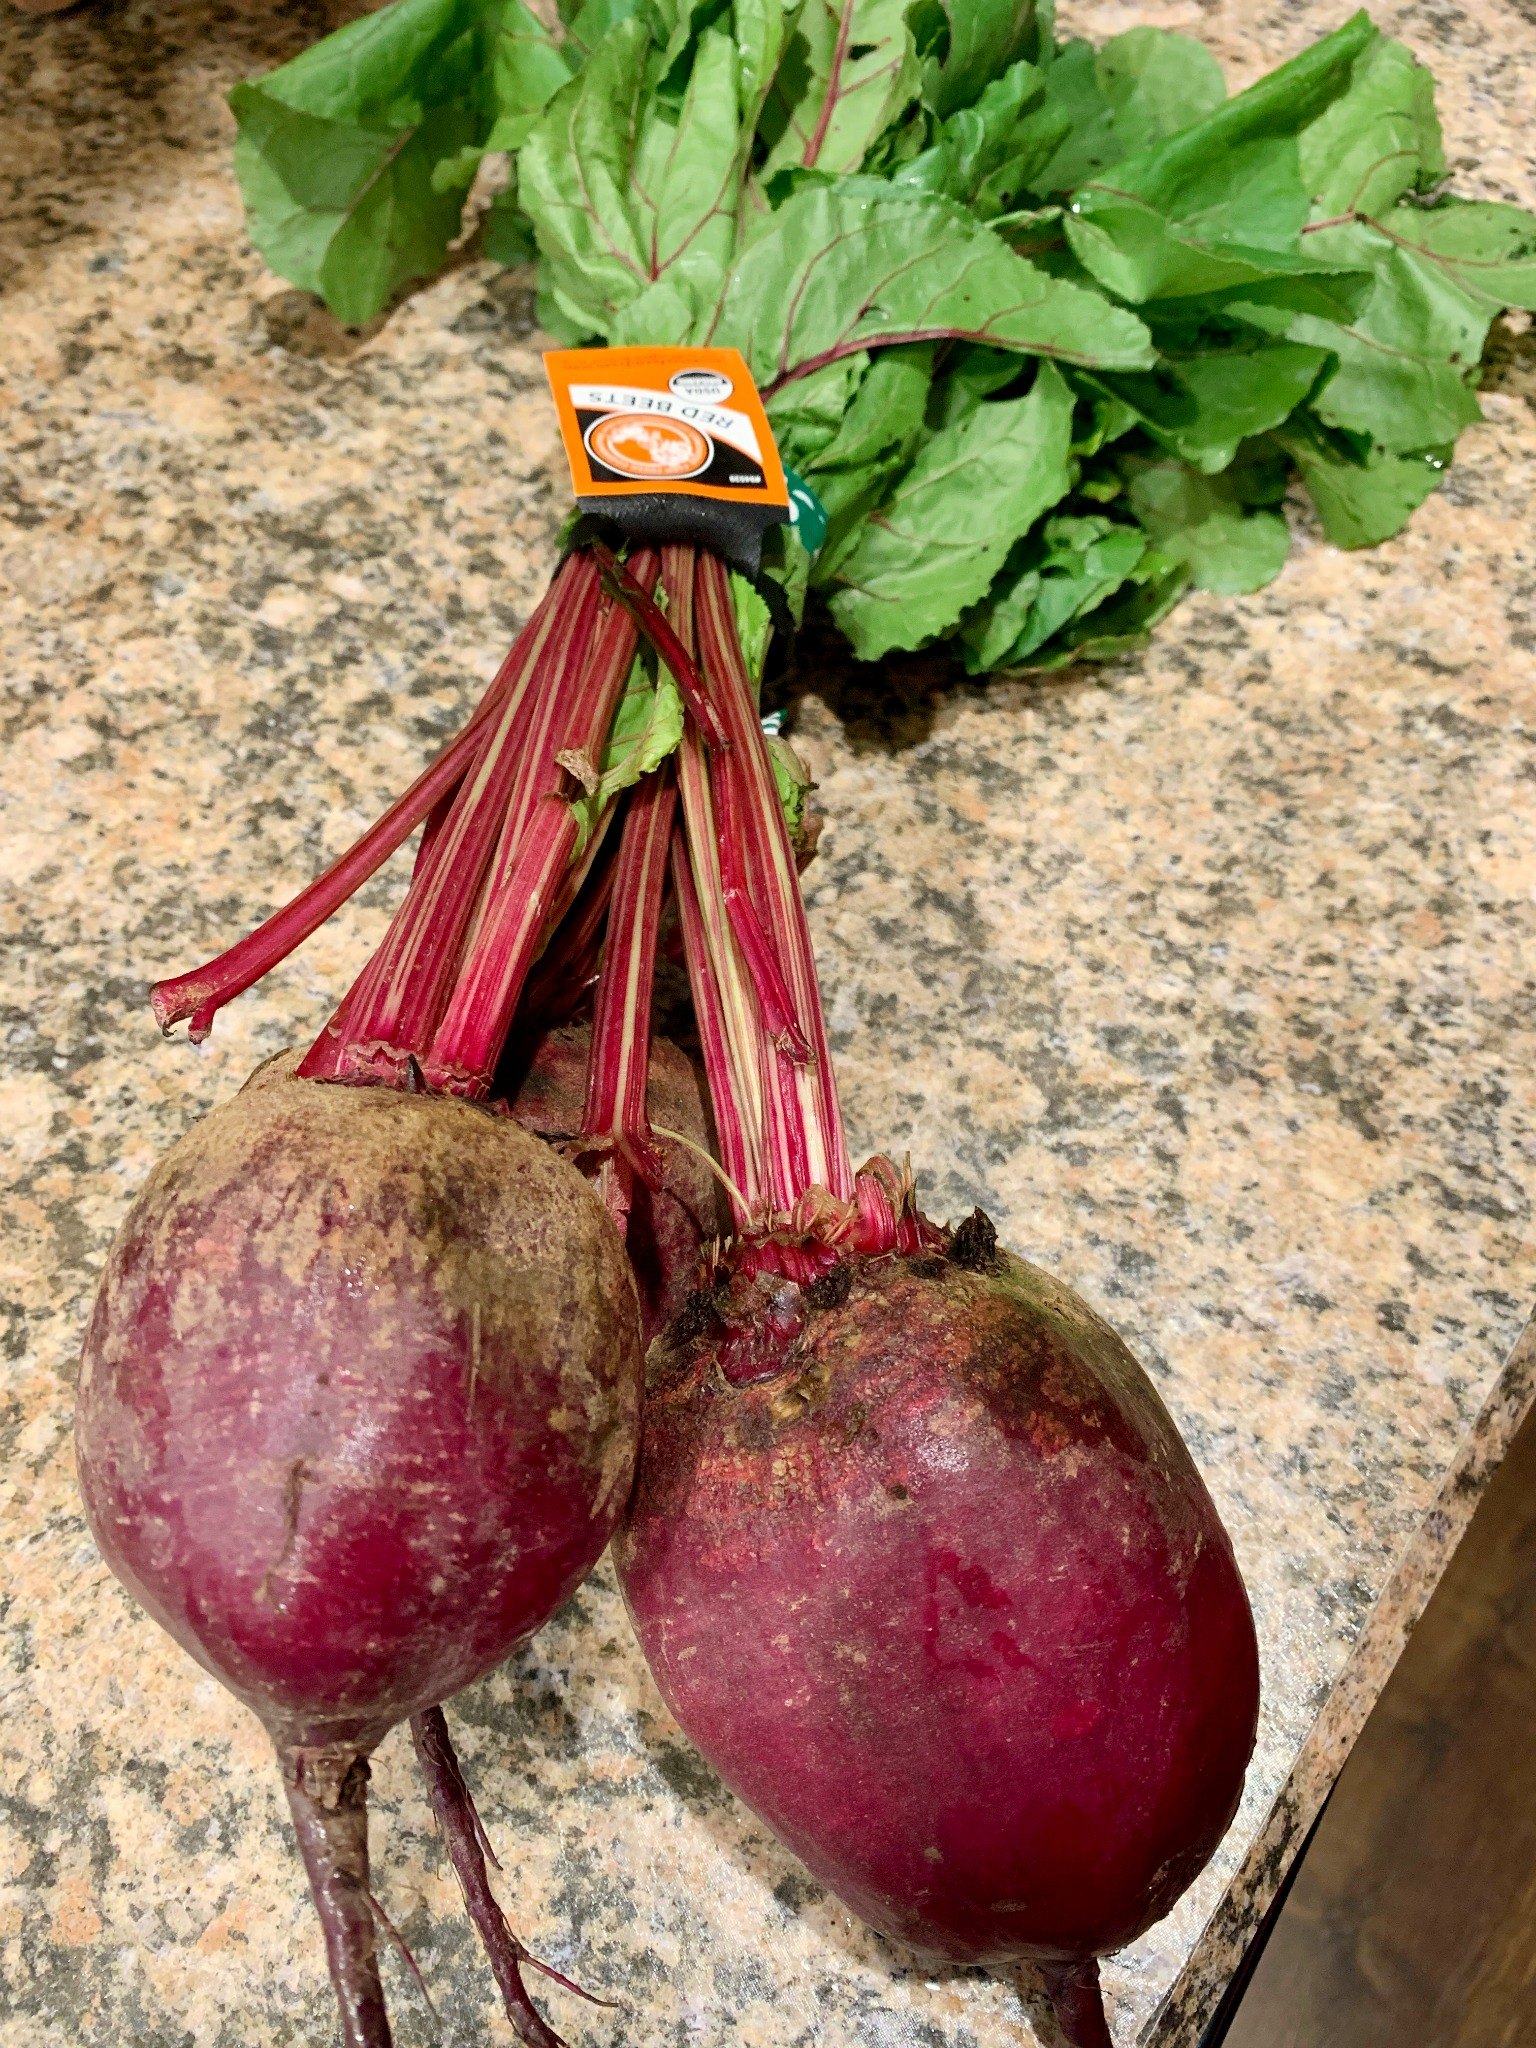 3 large beets with stems and leaves still attached